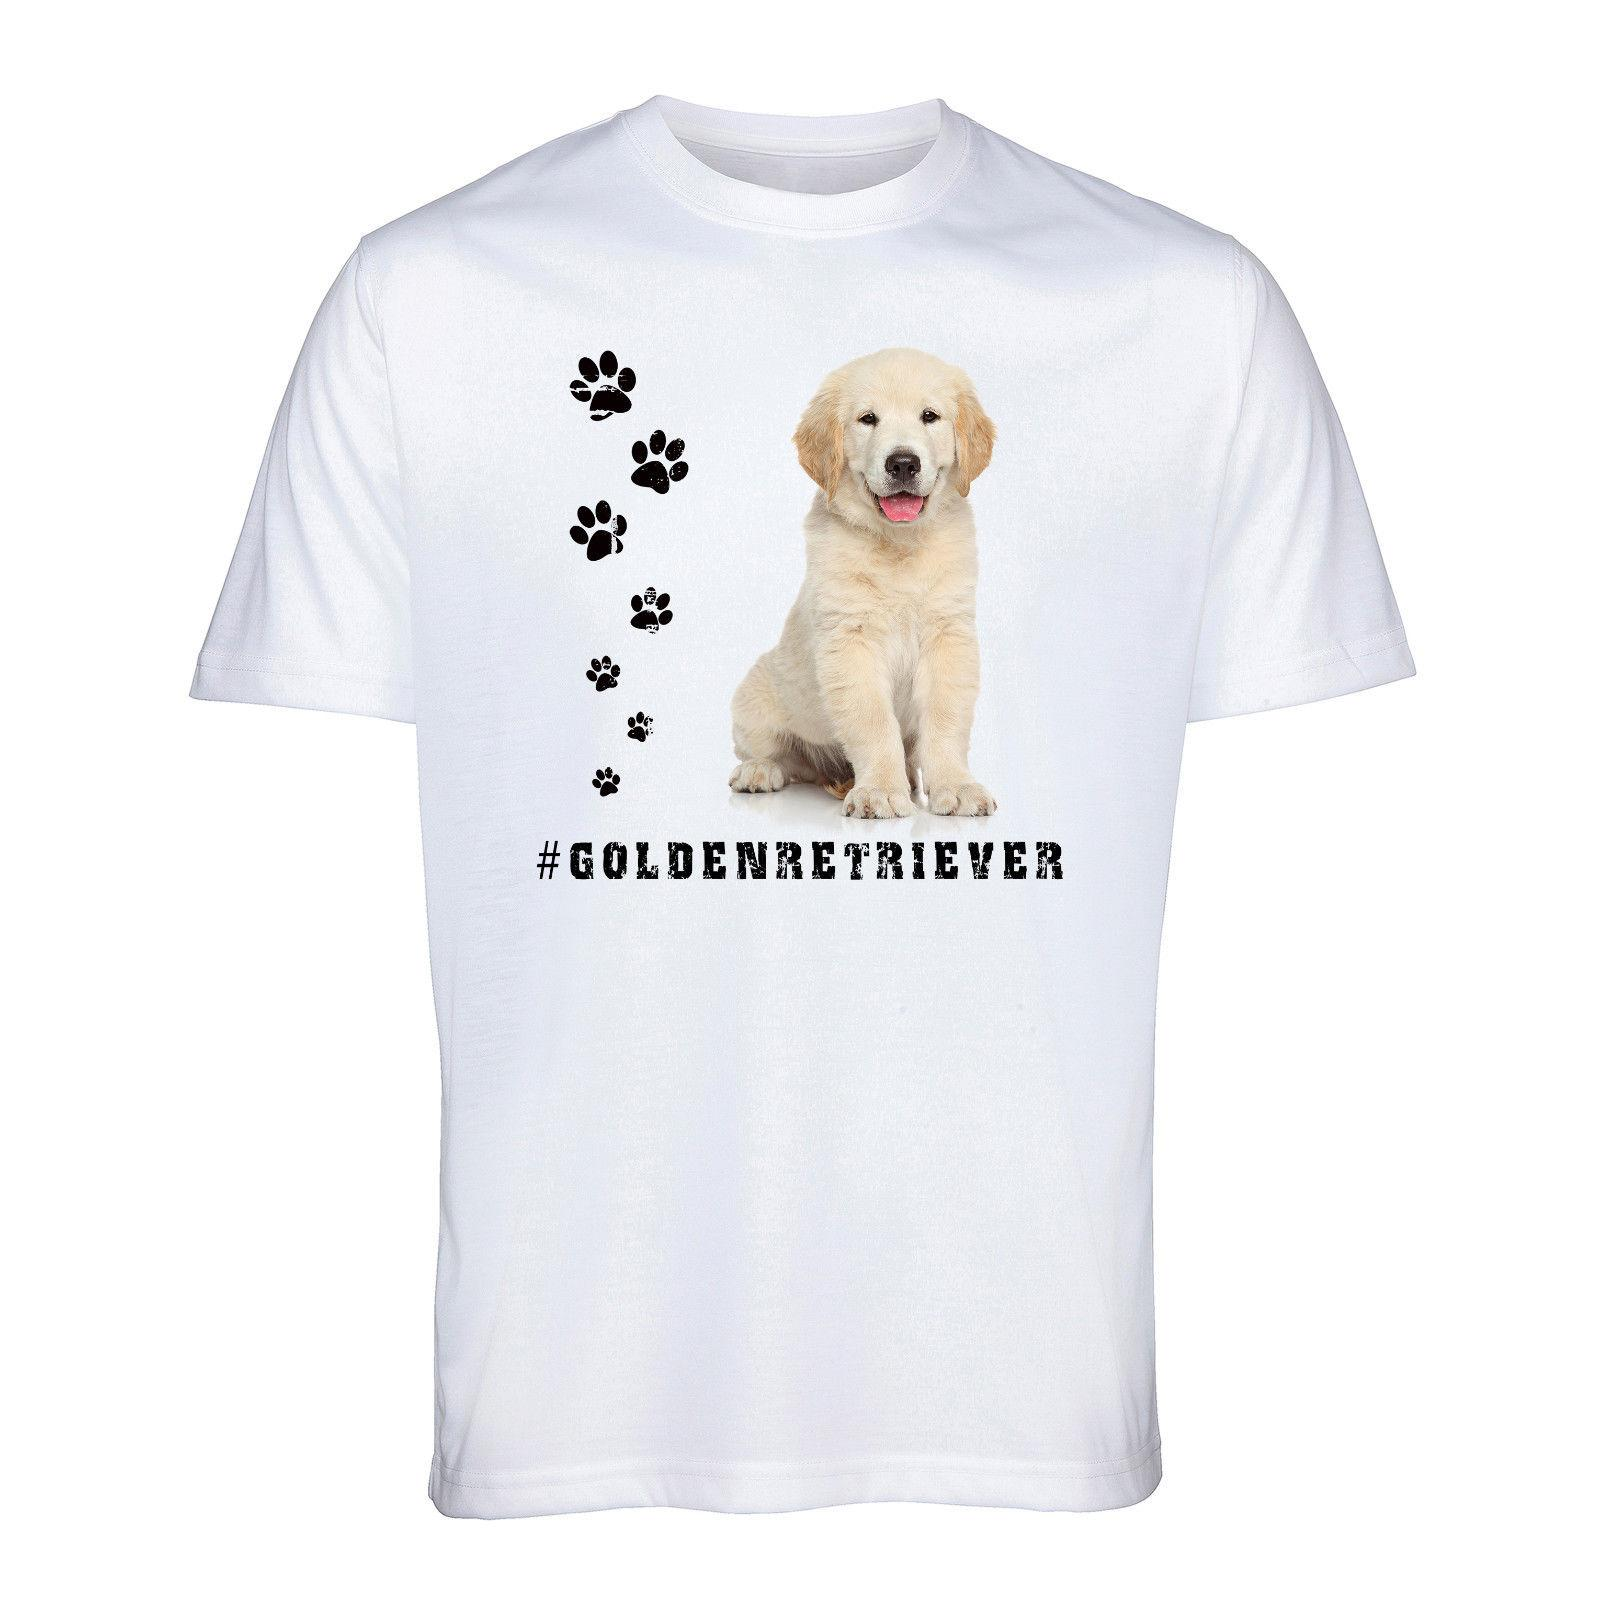 GOLDEN RETRIEVER T Shirt Hashtag Tee Dog Breed Animal Pet Mens Womens Funny Gift Cartoon t shirt men Unisex New Fashion tshirt